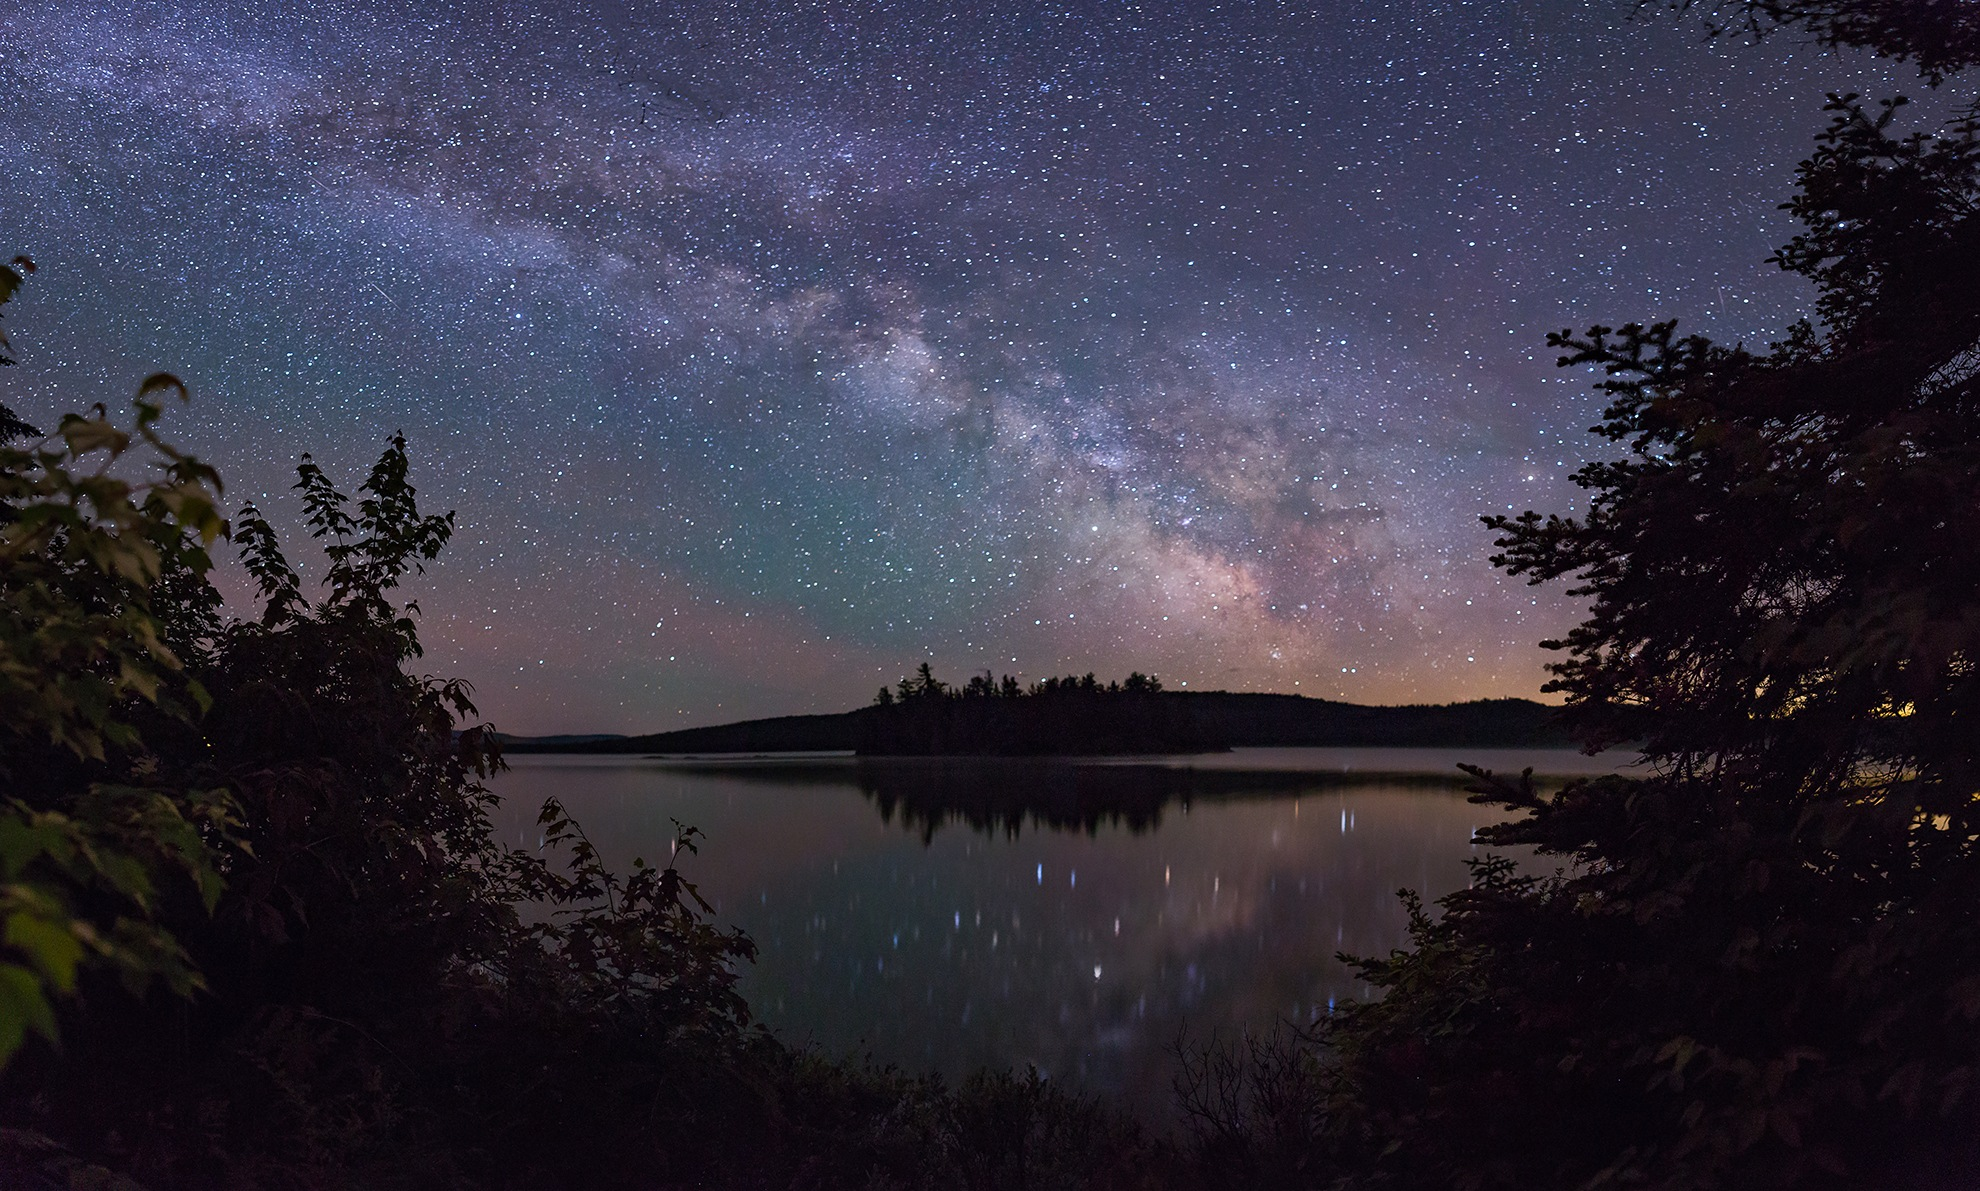 The Island and the Milky Way by Steve Dunsford